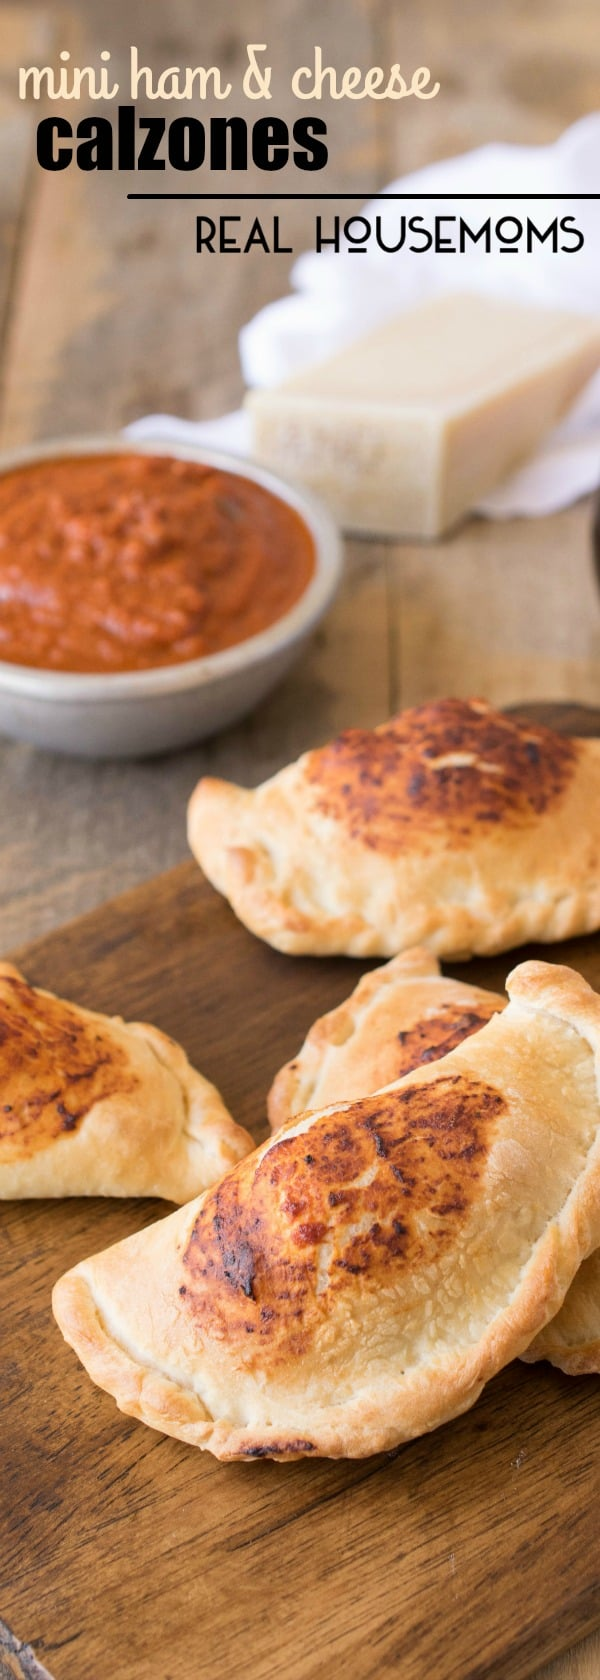 MINI HAM & CHEESE CALZONES are an easy to make dinner give pizza night a whole new meaning for kids and adults!